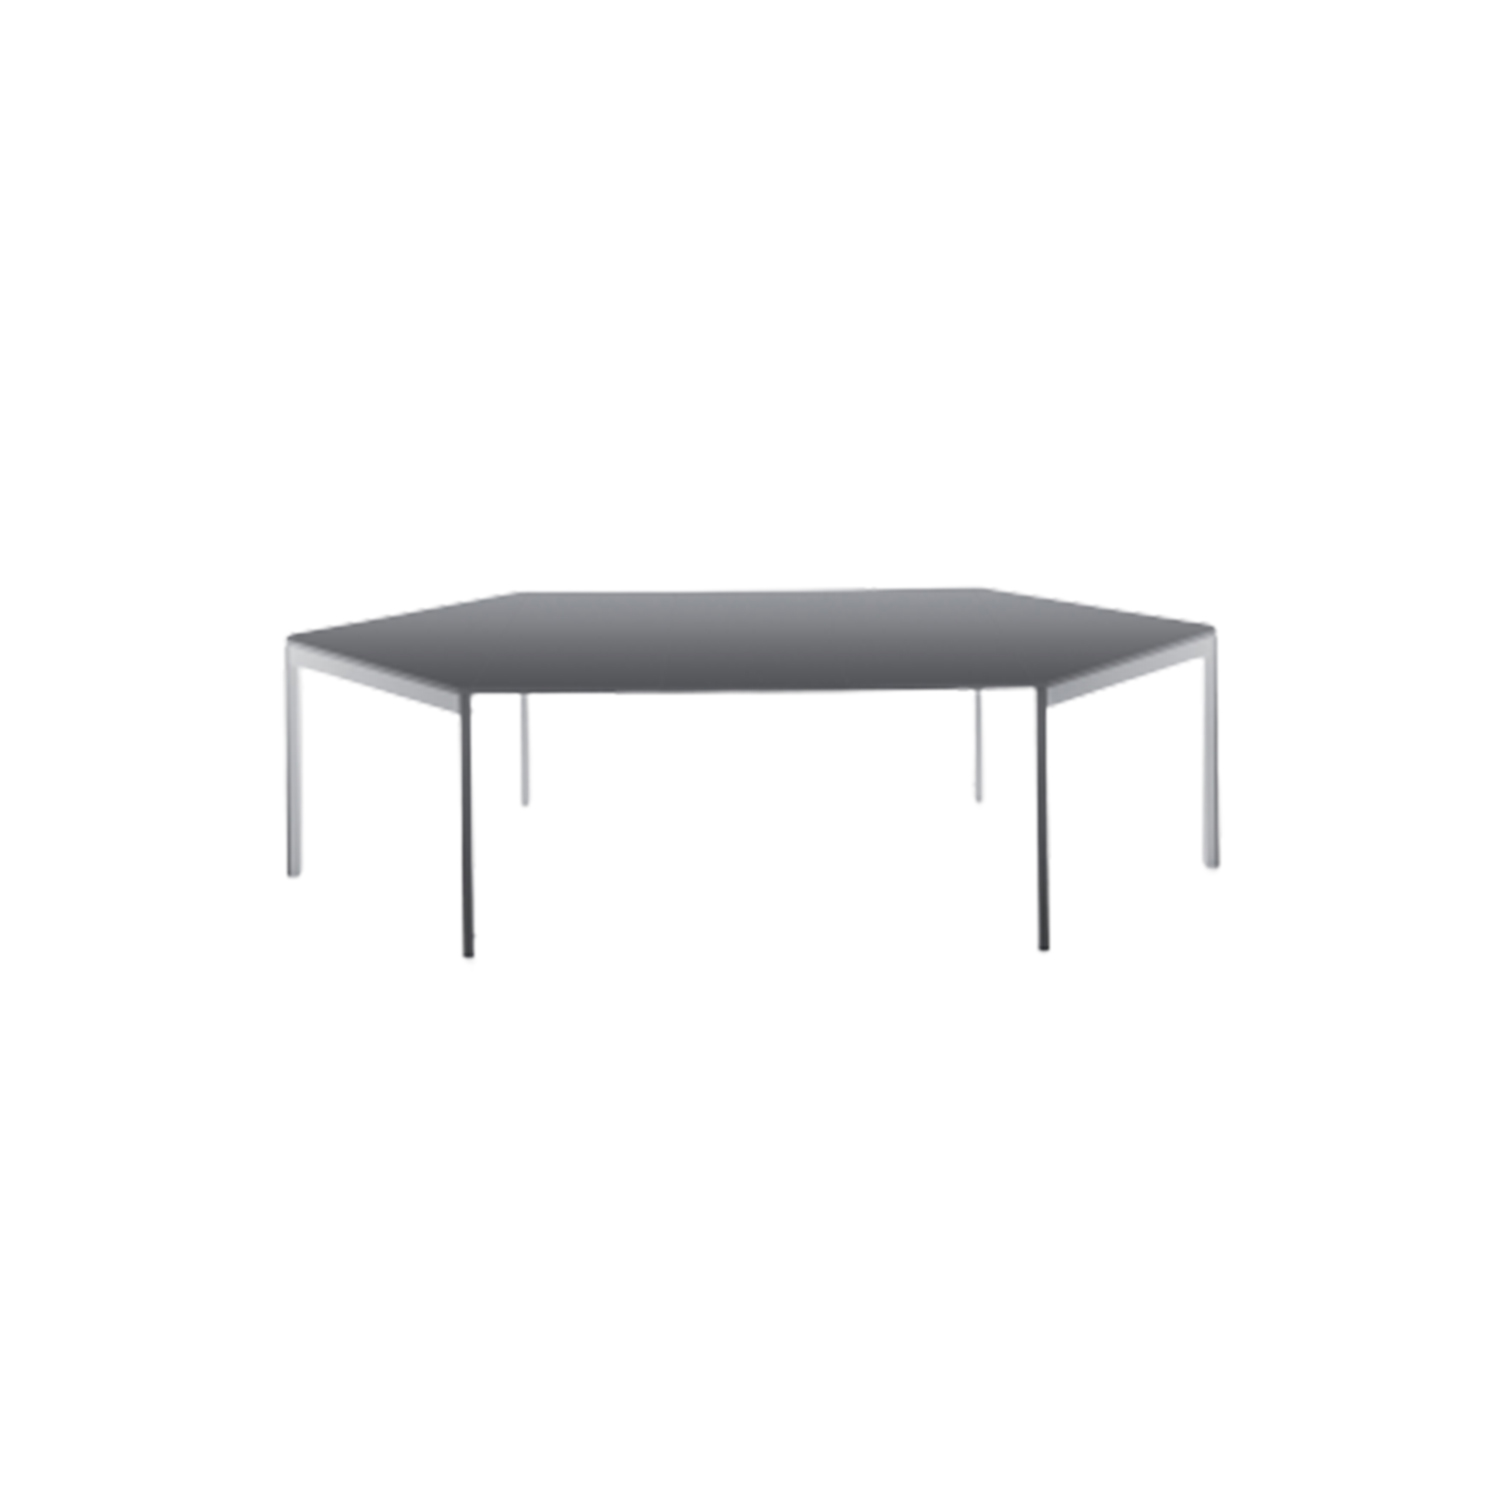 Diesis Extendable Square Table - Unexpected plays of volumes, cuts and facets make Diesis an elegant and modern table, with unusually refined details. The sophisticated technology hidden inside easily extends the top until it measures more than 2,75 meters long.